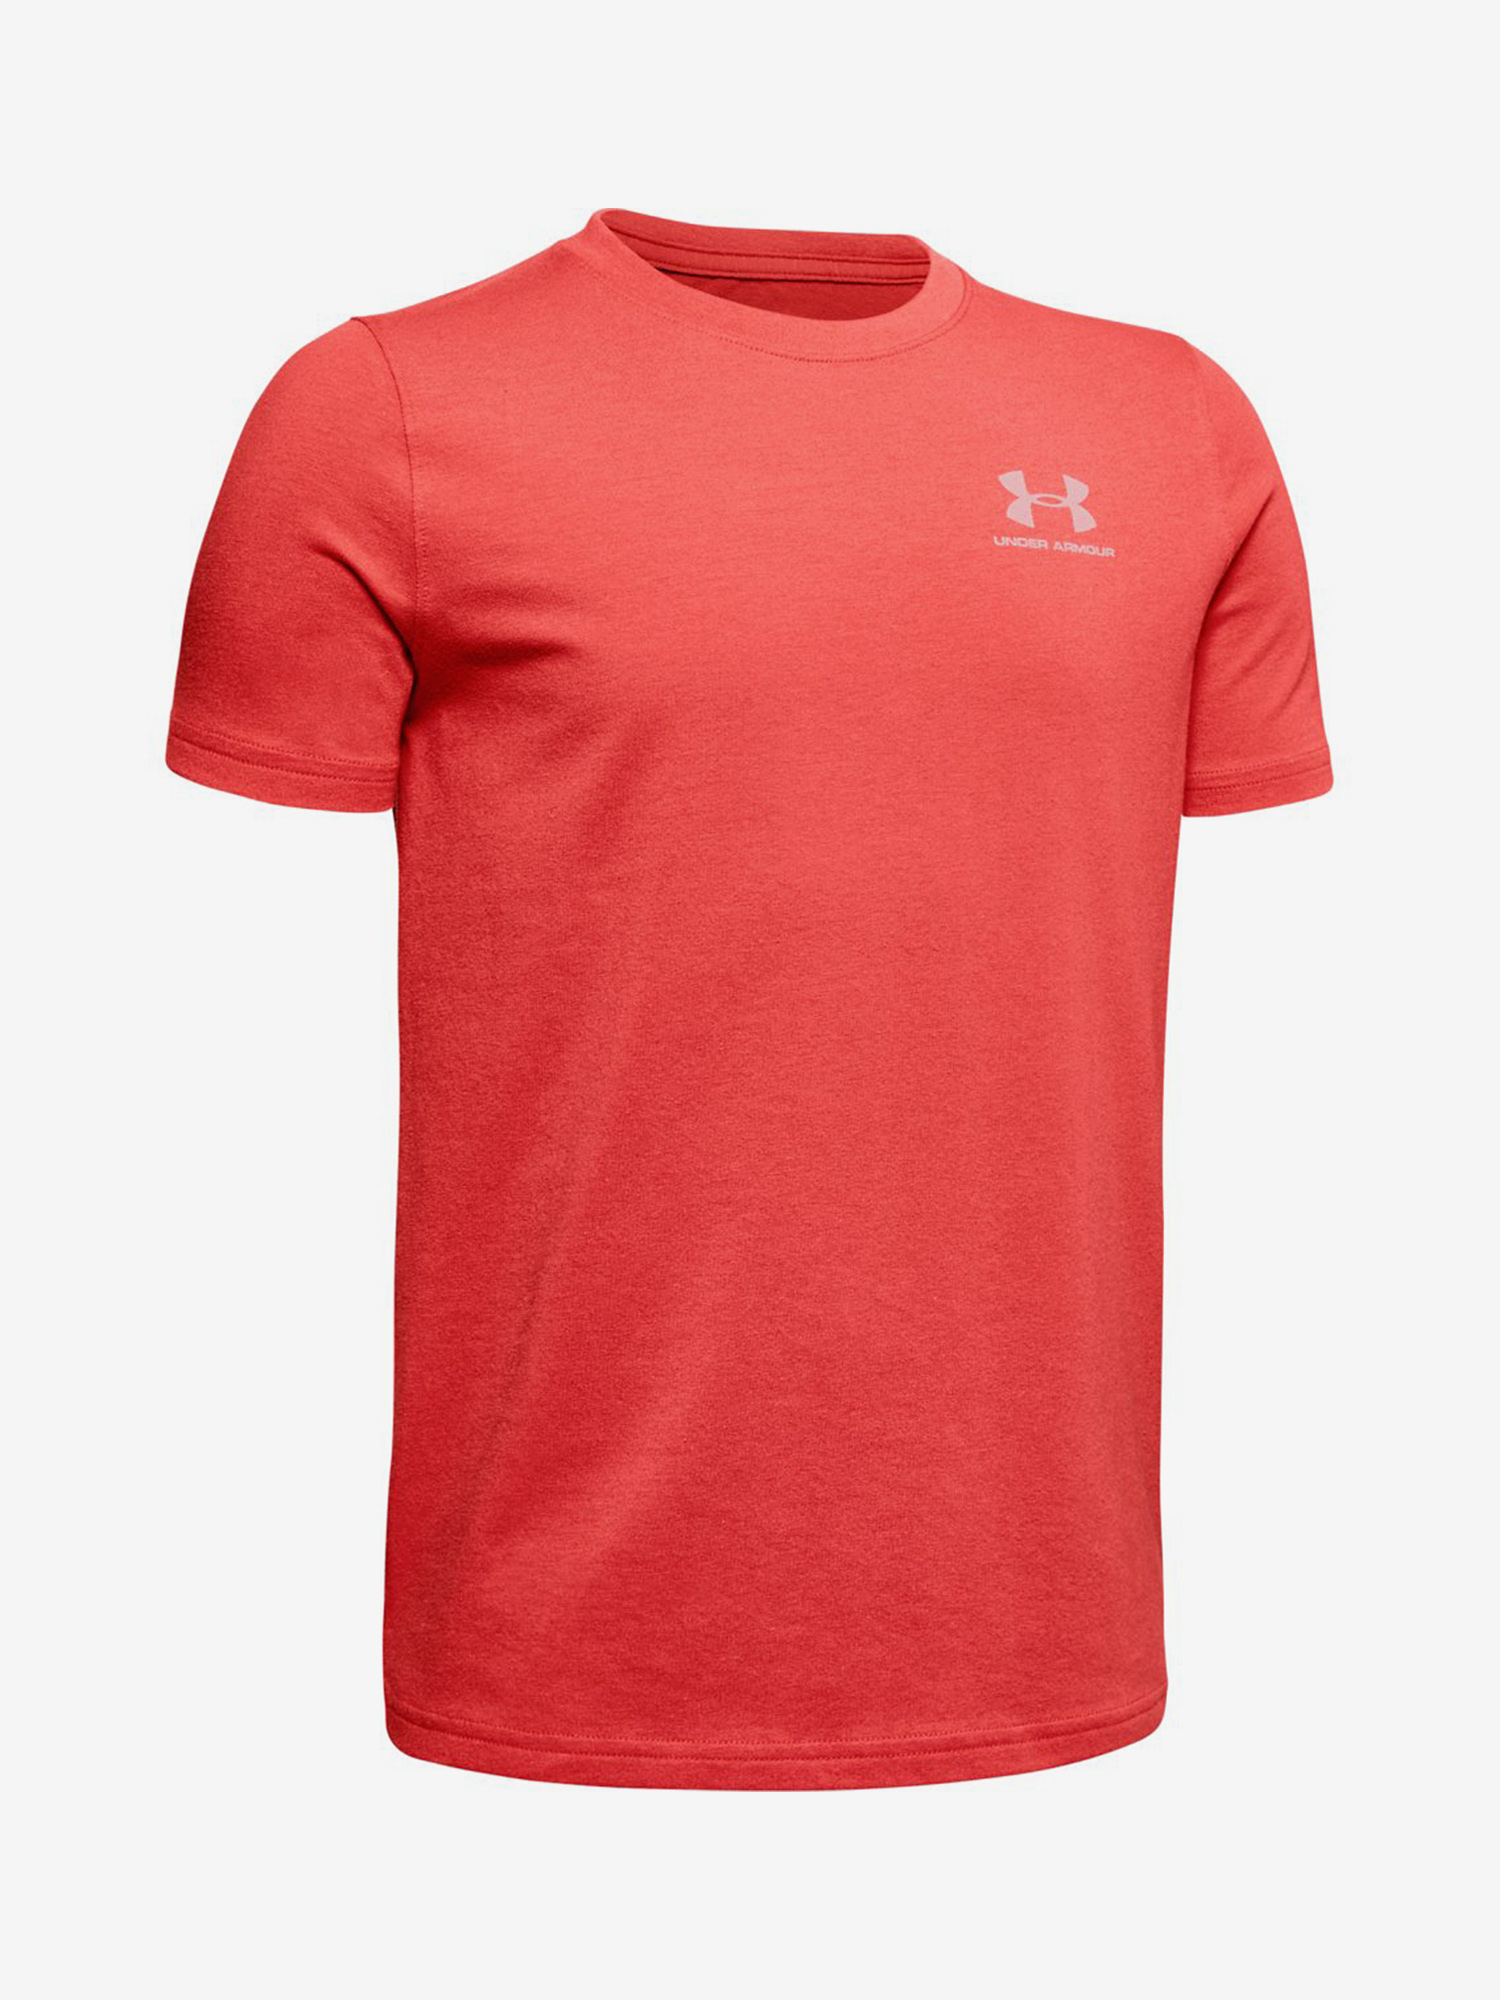 Tričko Under Armour Cotton Ss-Red Červená